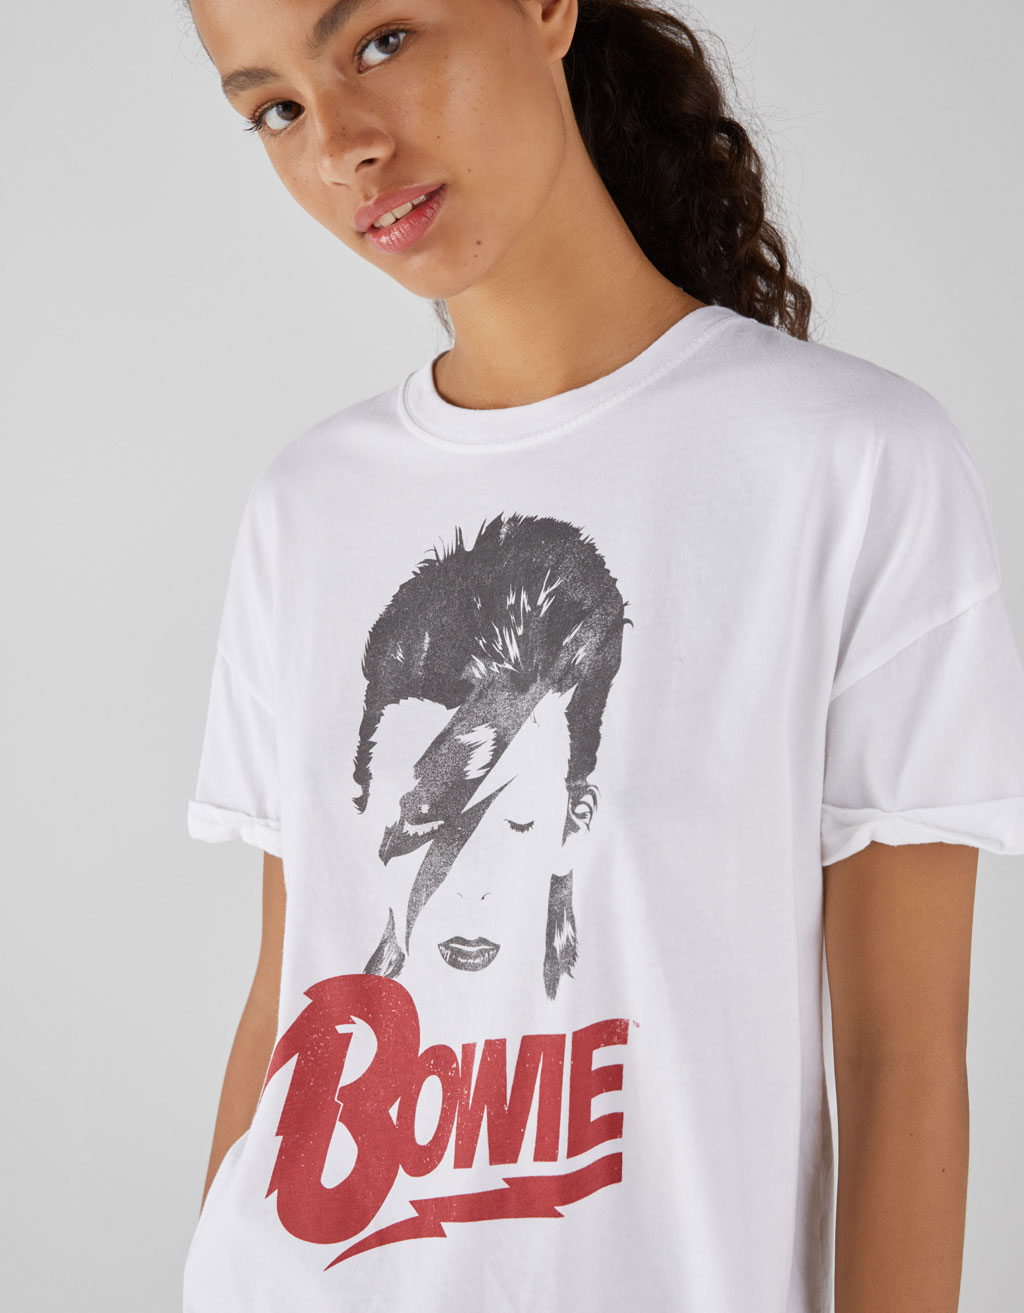 BOWIE Tシャツ